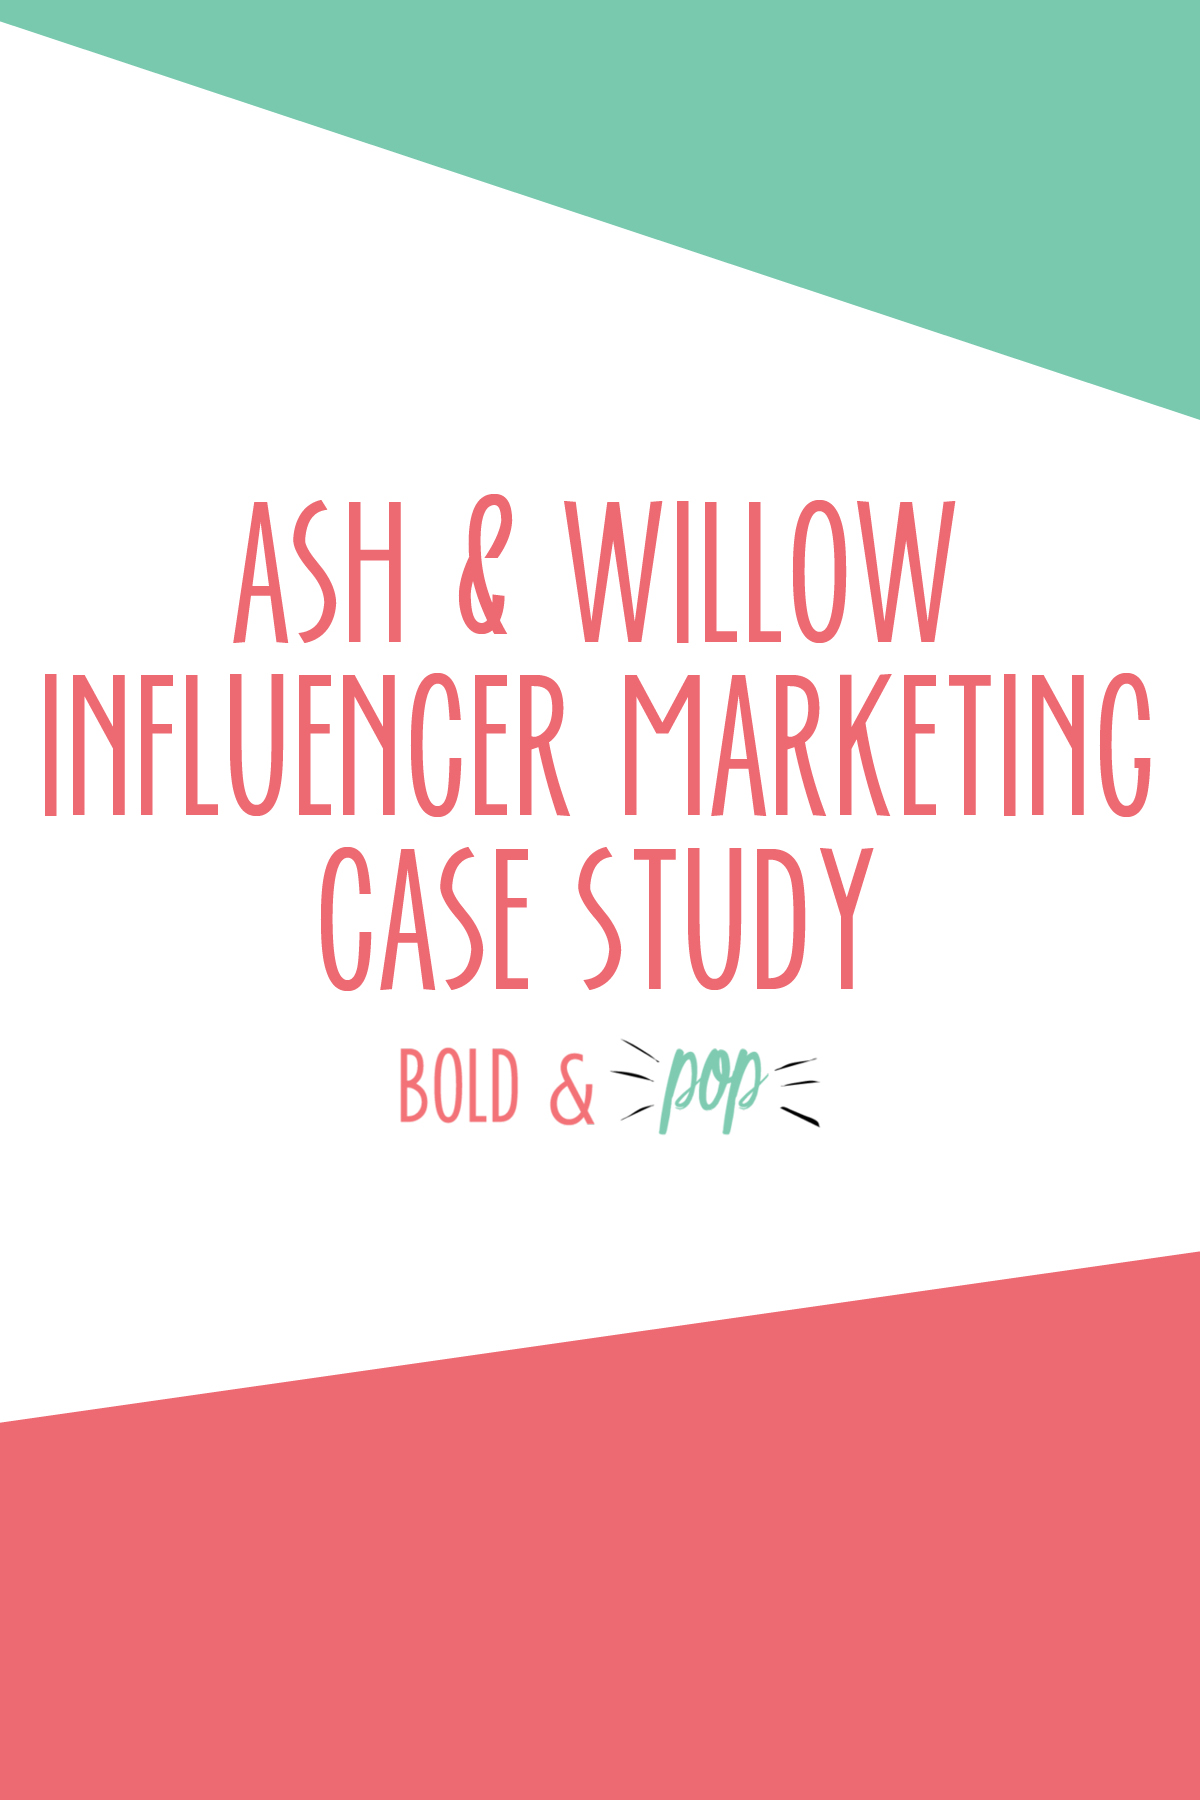 Bold & Pop : Ash & Willow Influencer Marketing Case Study